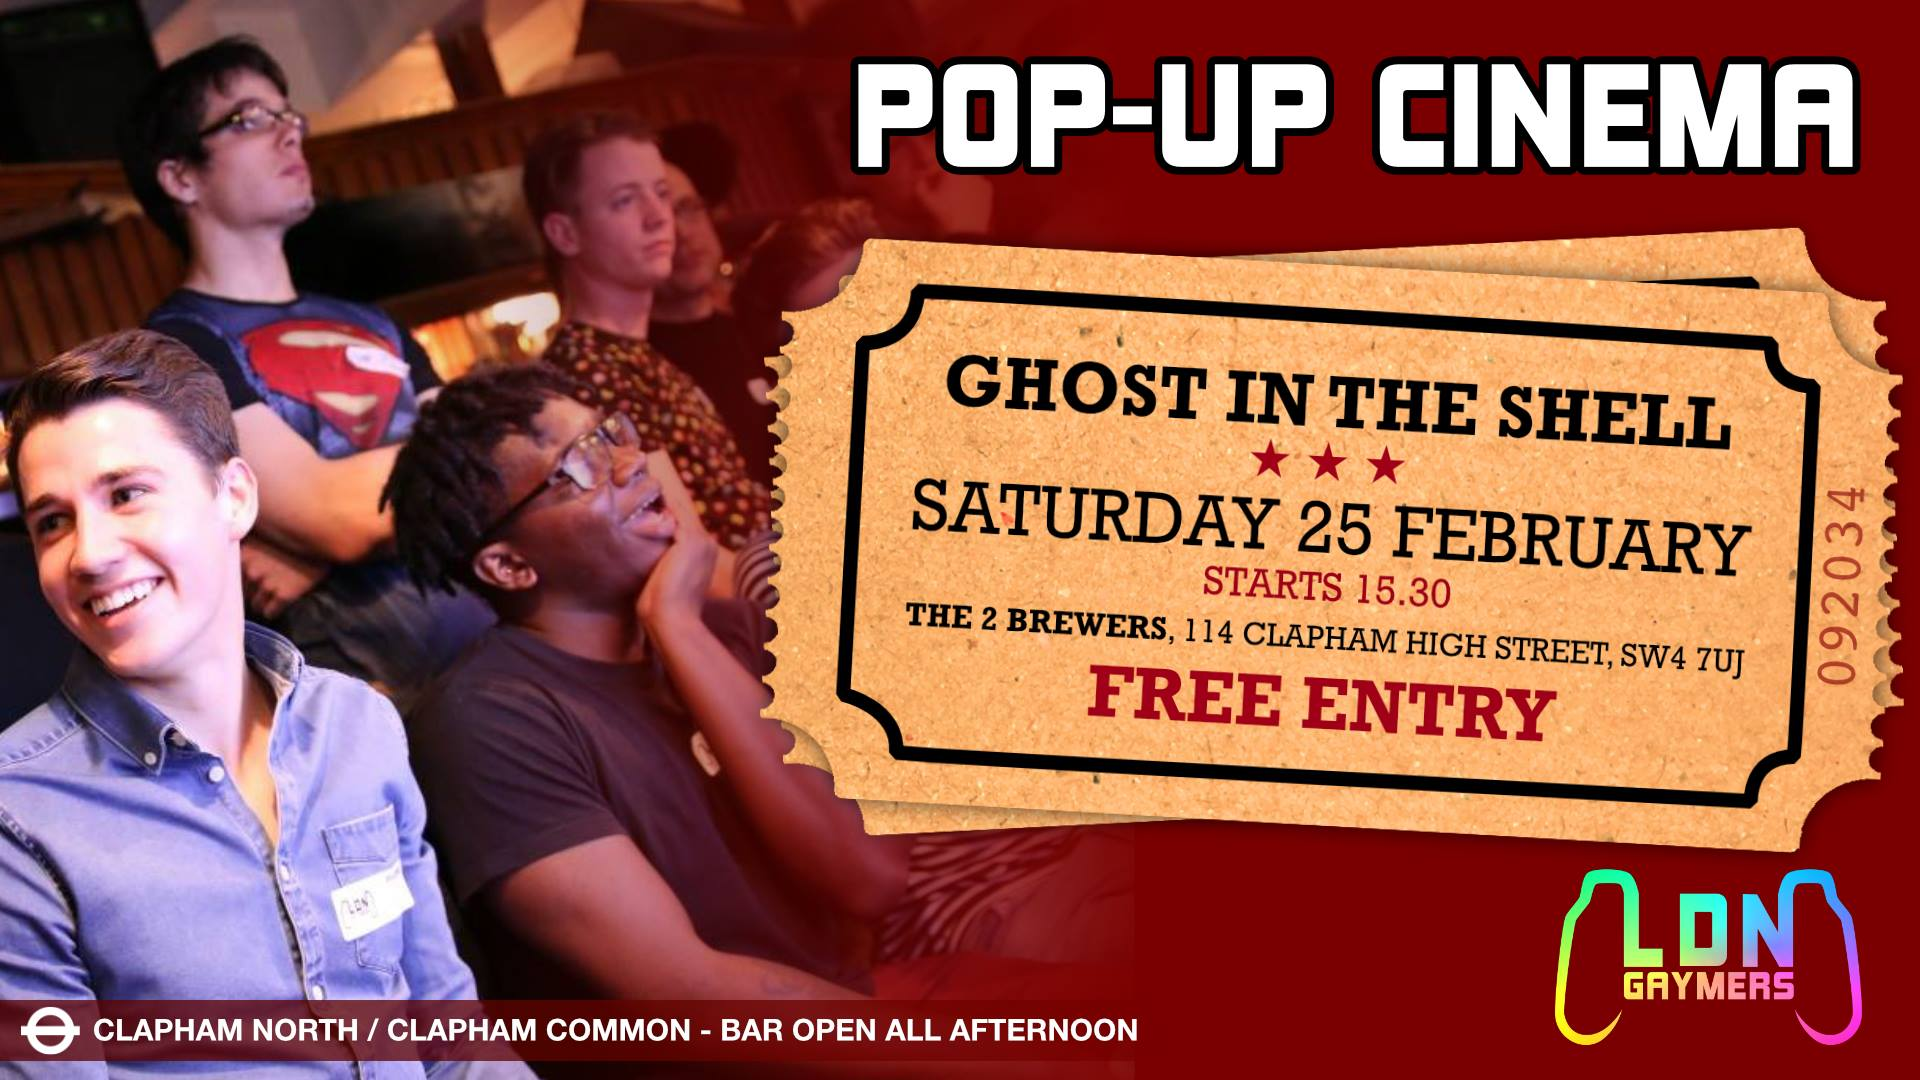 Pop Up Cinema - Ghost In The Shell - LDN Gaymers